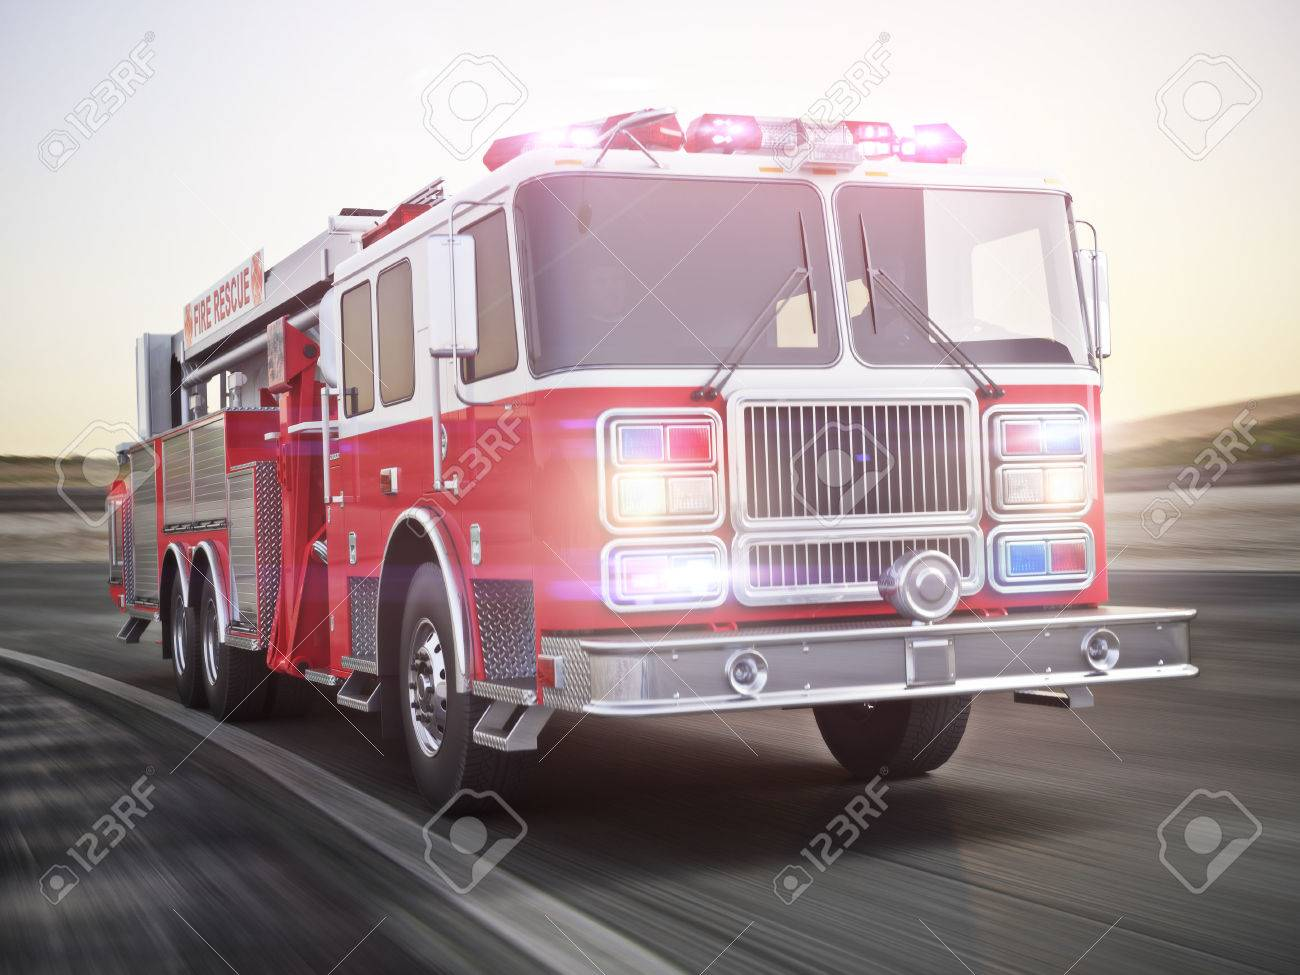 Fire Truck Running With Lights And Sirens On A Street With Motion